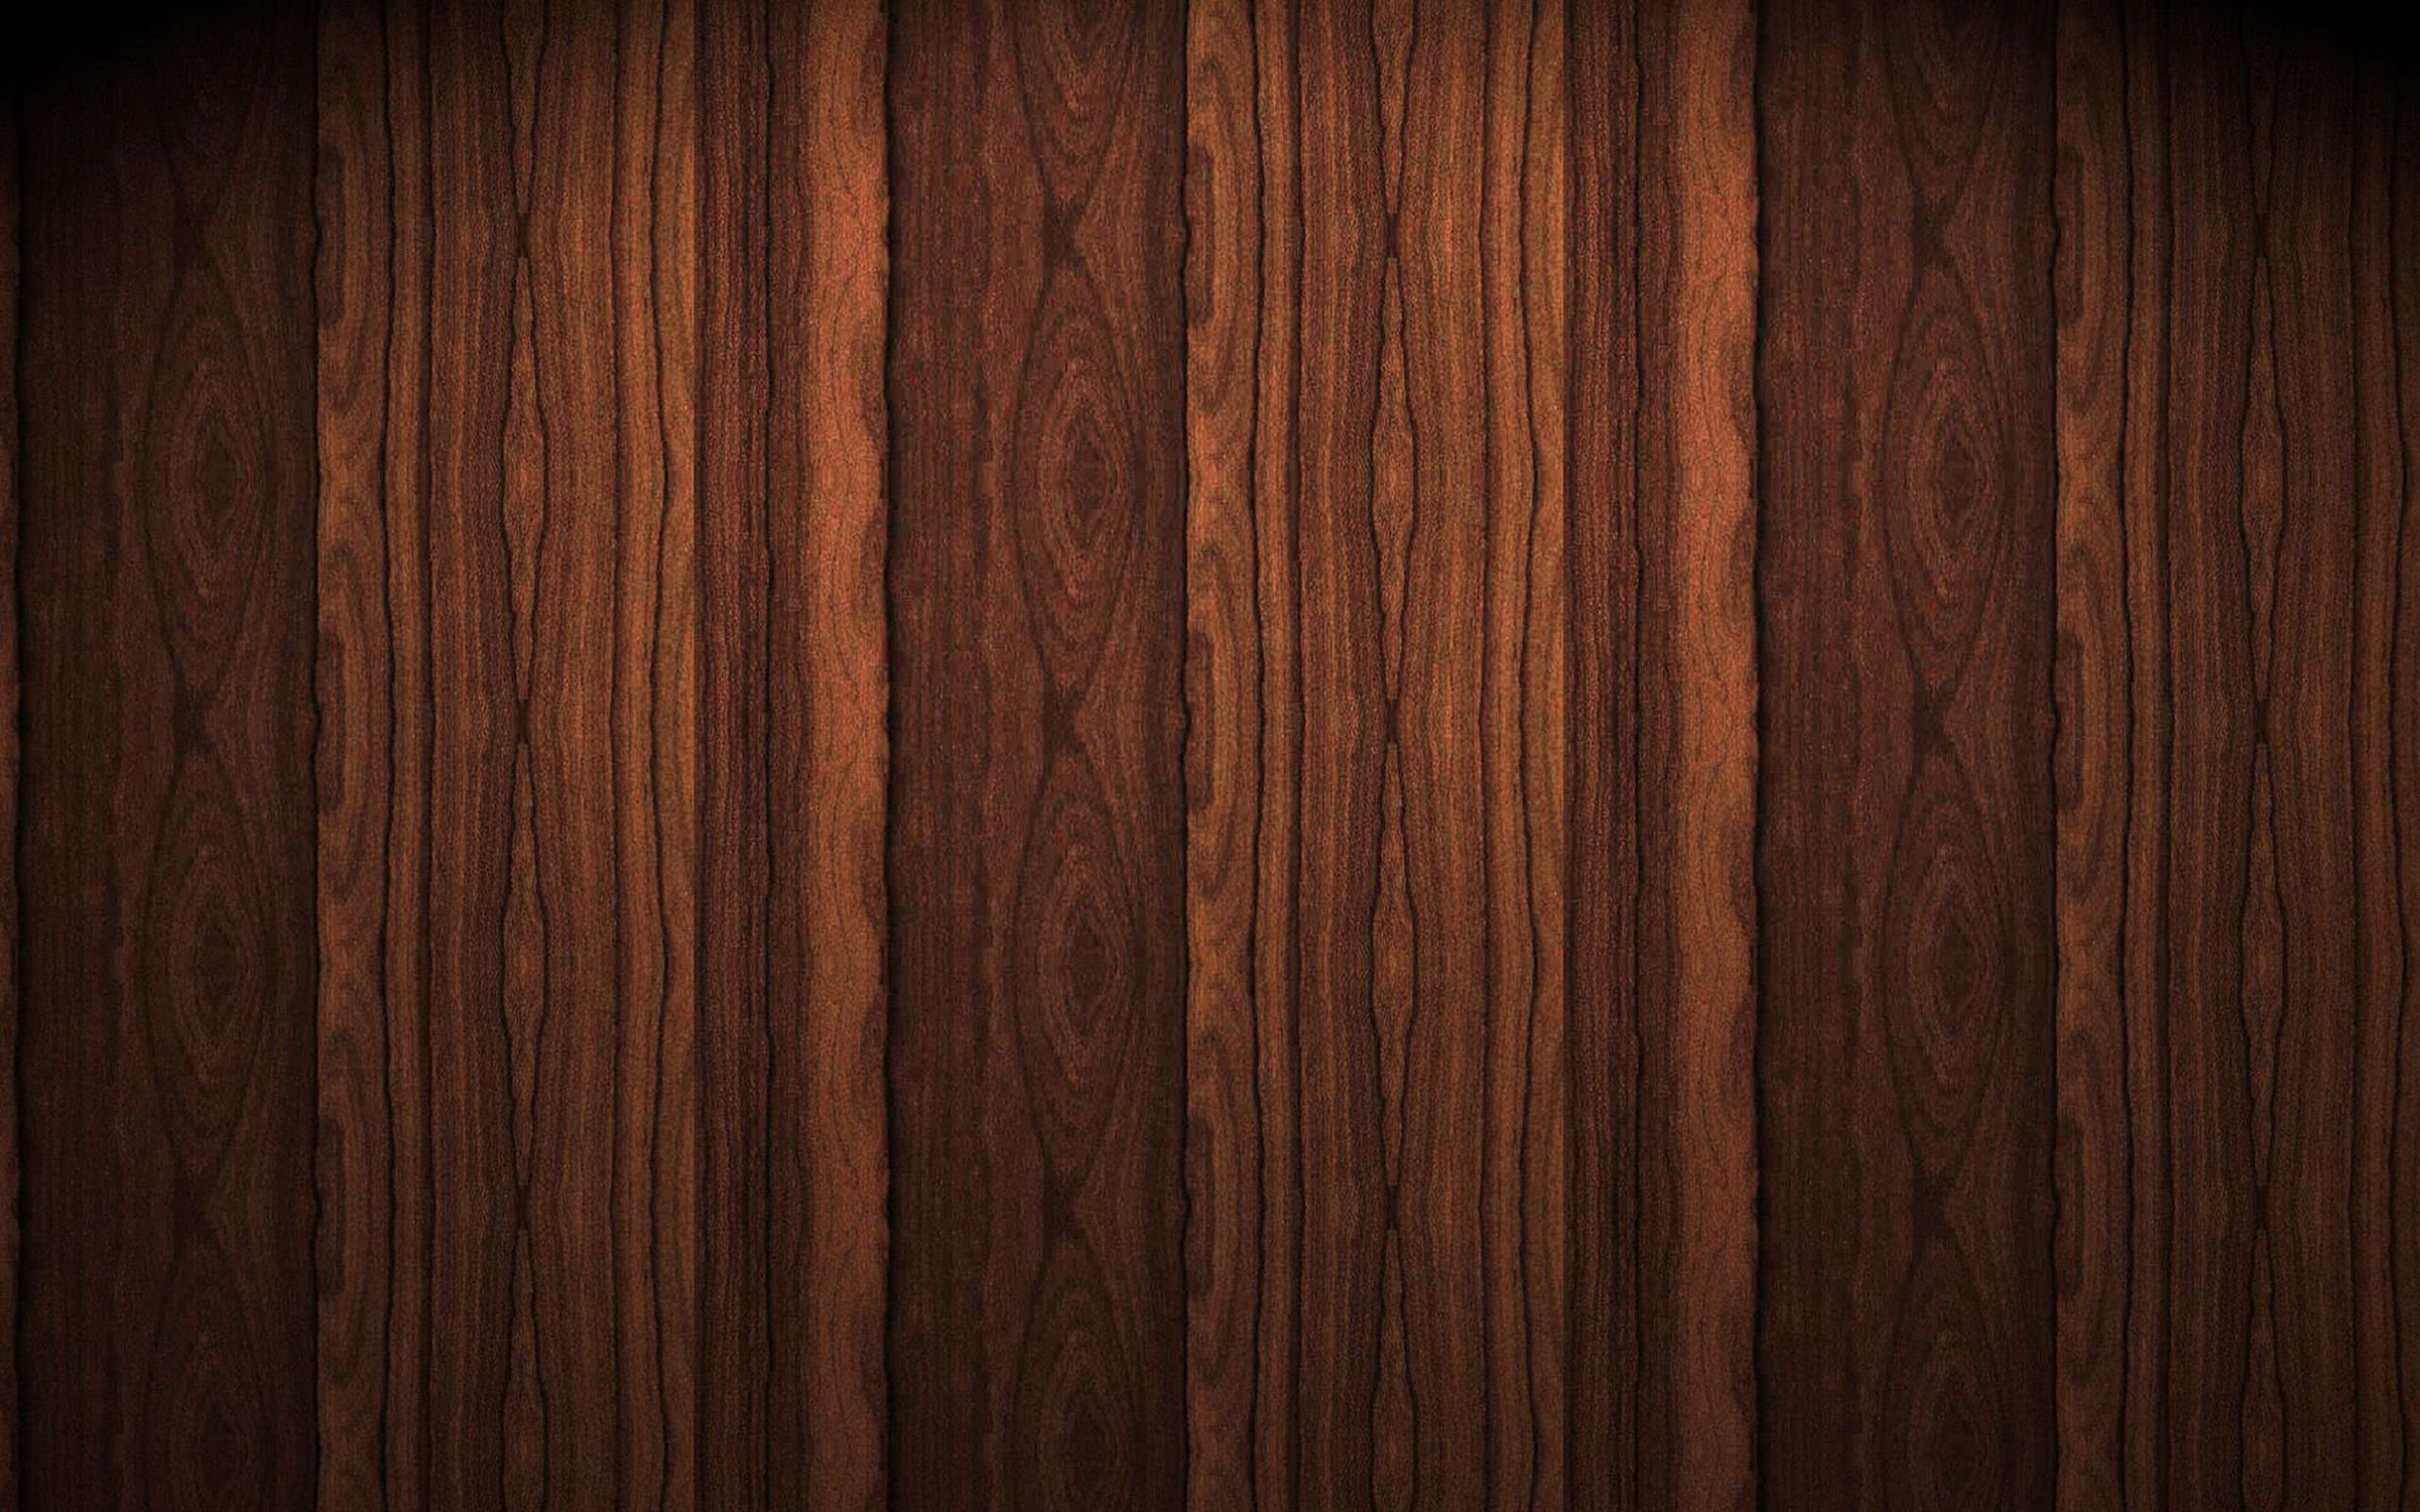 dark wood texture 12 wallpapers hd 2 560 1